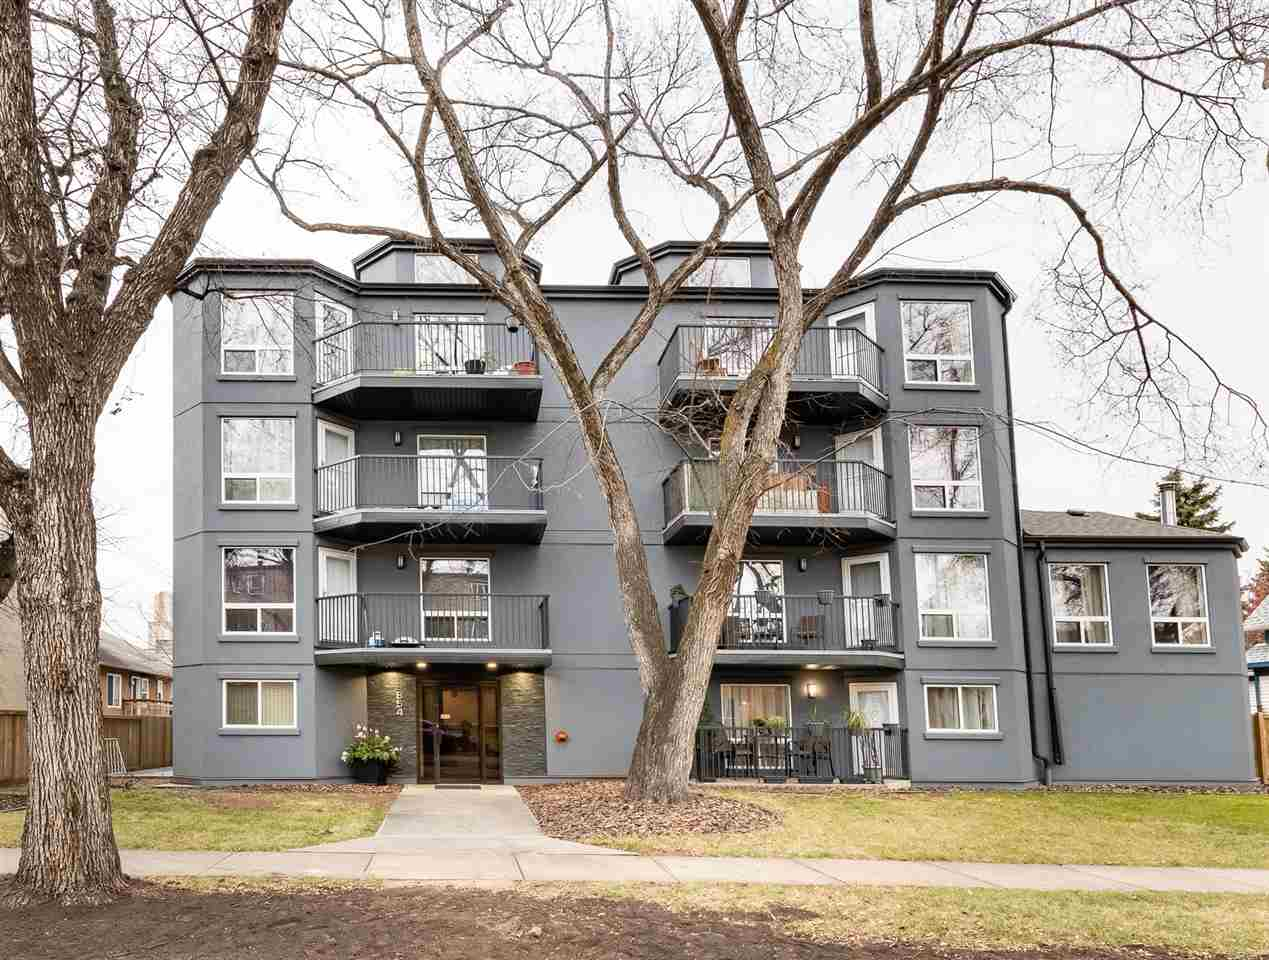 INVESTORS/STUDENTS/EMPTY NESTERS - Lowest Priced 2 bedroom condo with heated underground parking in the area. This spacious 1307 sq ft condo has everything you need & more. Main floor boasts a bright kitchen, washer/laundry area, dining room, large living area, half bath & access to the main floor patio. 2nd level offers a large loft style living area, a full bath, 2nd bedroom, Master with private balcony and semi ensuite (full 4 pce bath). Huge closets in the bedrooms, the abundance of storage and heated underground parking make this an easy choice. The building is currently undergoing a rejuvenation including exterior renovations and will be completely remodelled inside and out. Walking distance to Whyte Ave, close proximity to U of A, Mill Creek Ravine and downtown.